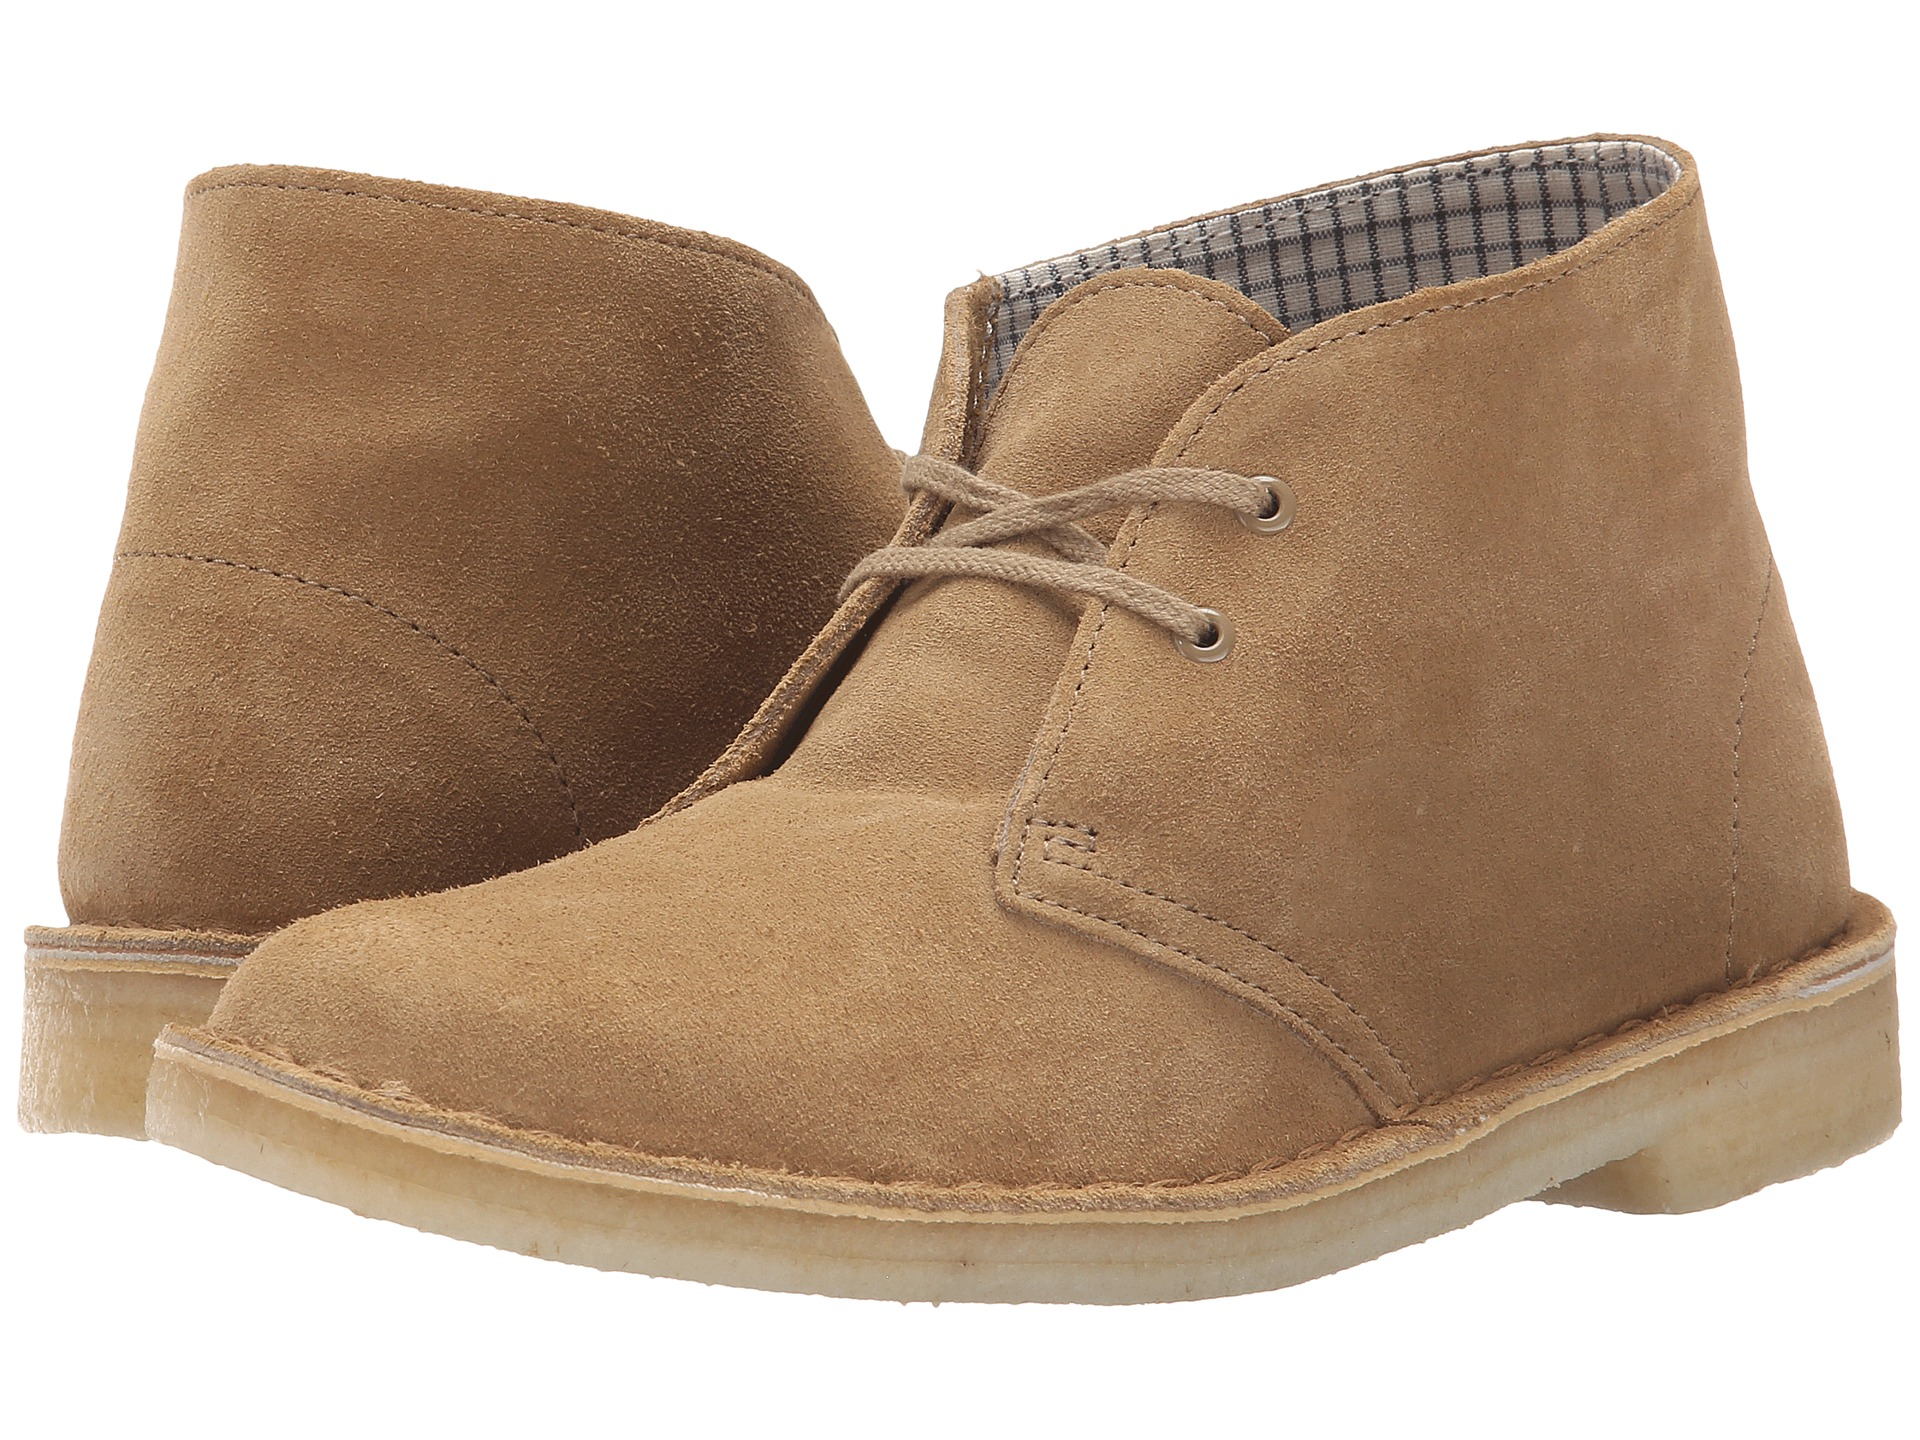 Don't miss the Clarks shoe sale online. Great savings on key styles for women, men and kids - includes boots sale. Find something in our current shoe sale today!